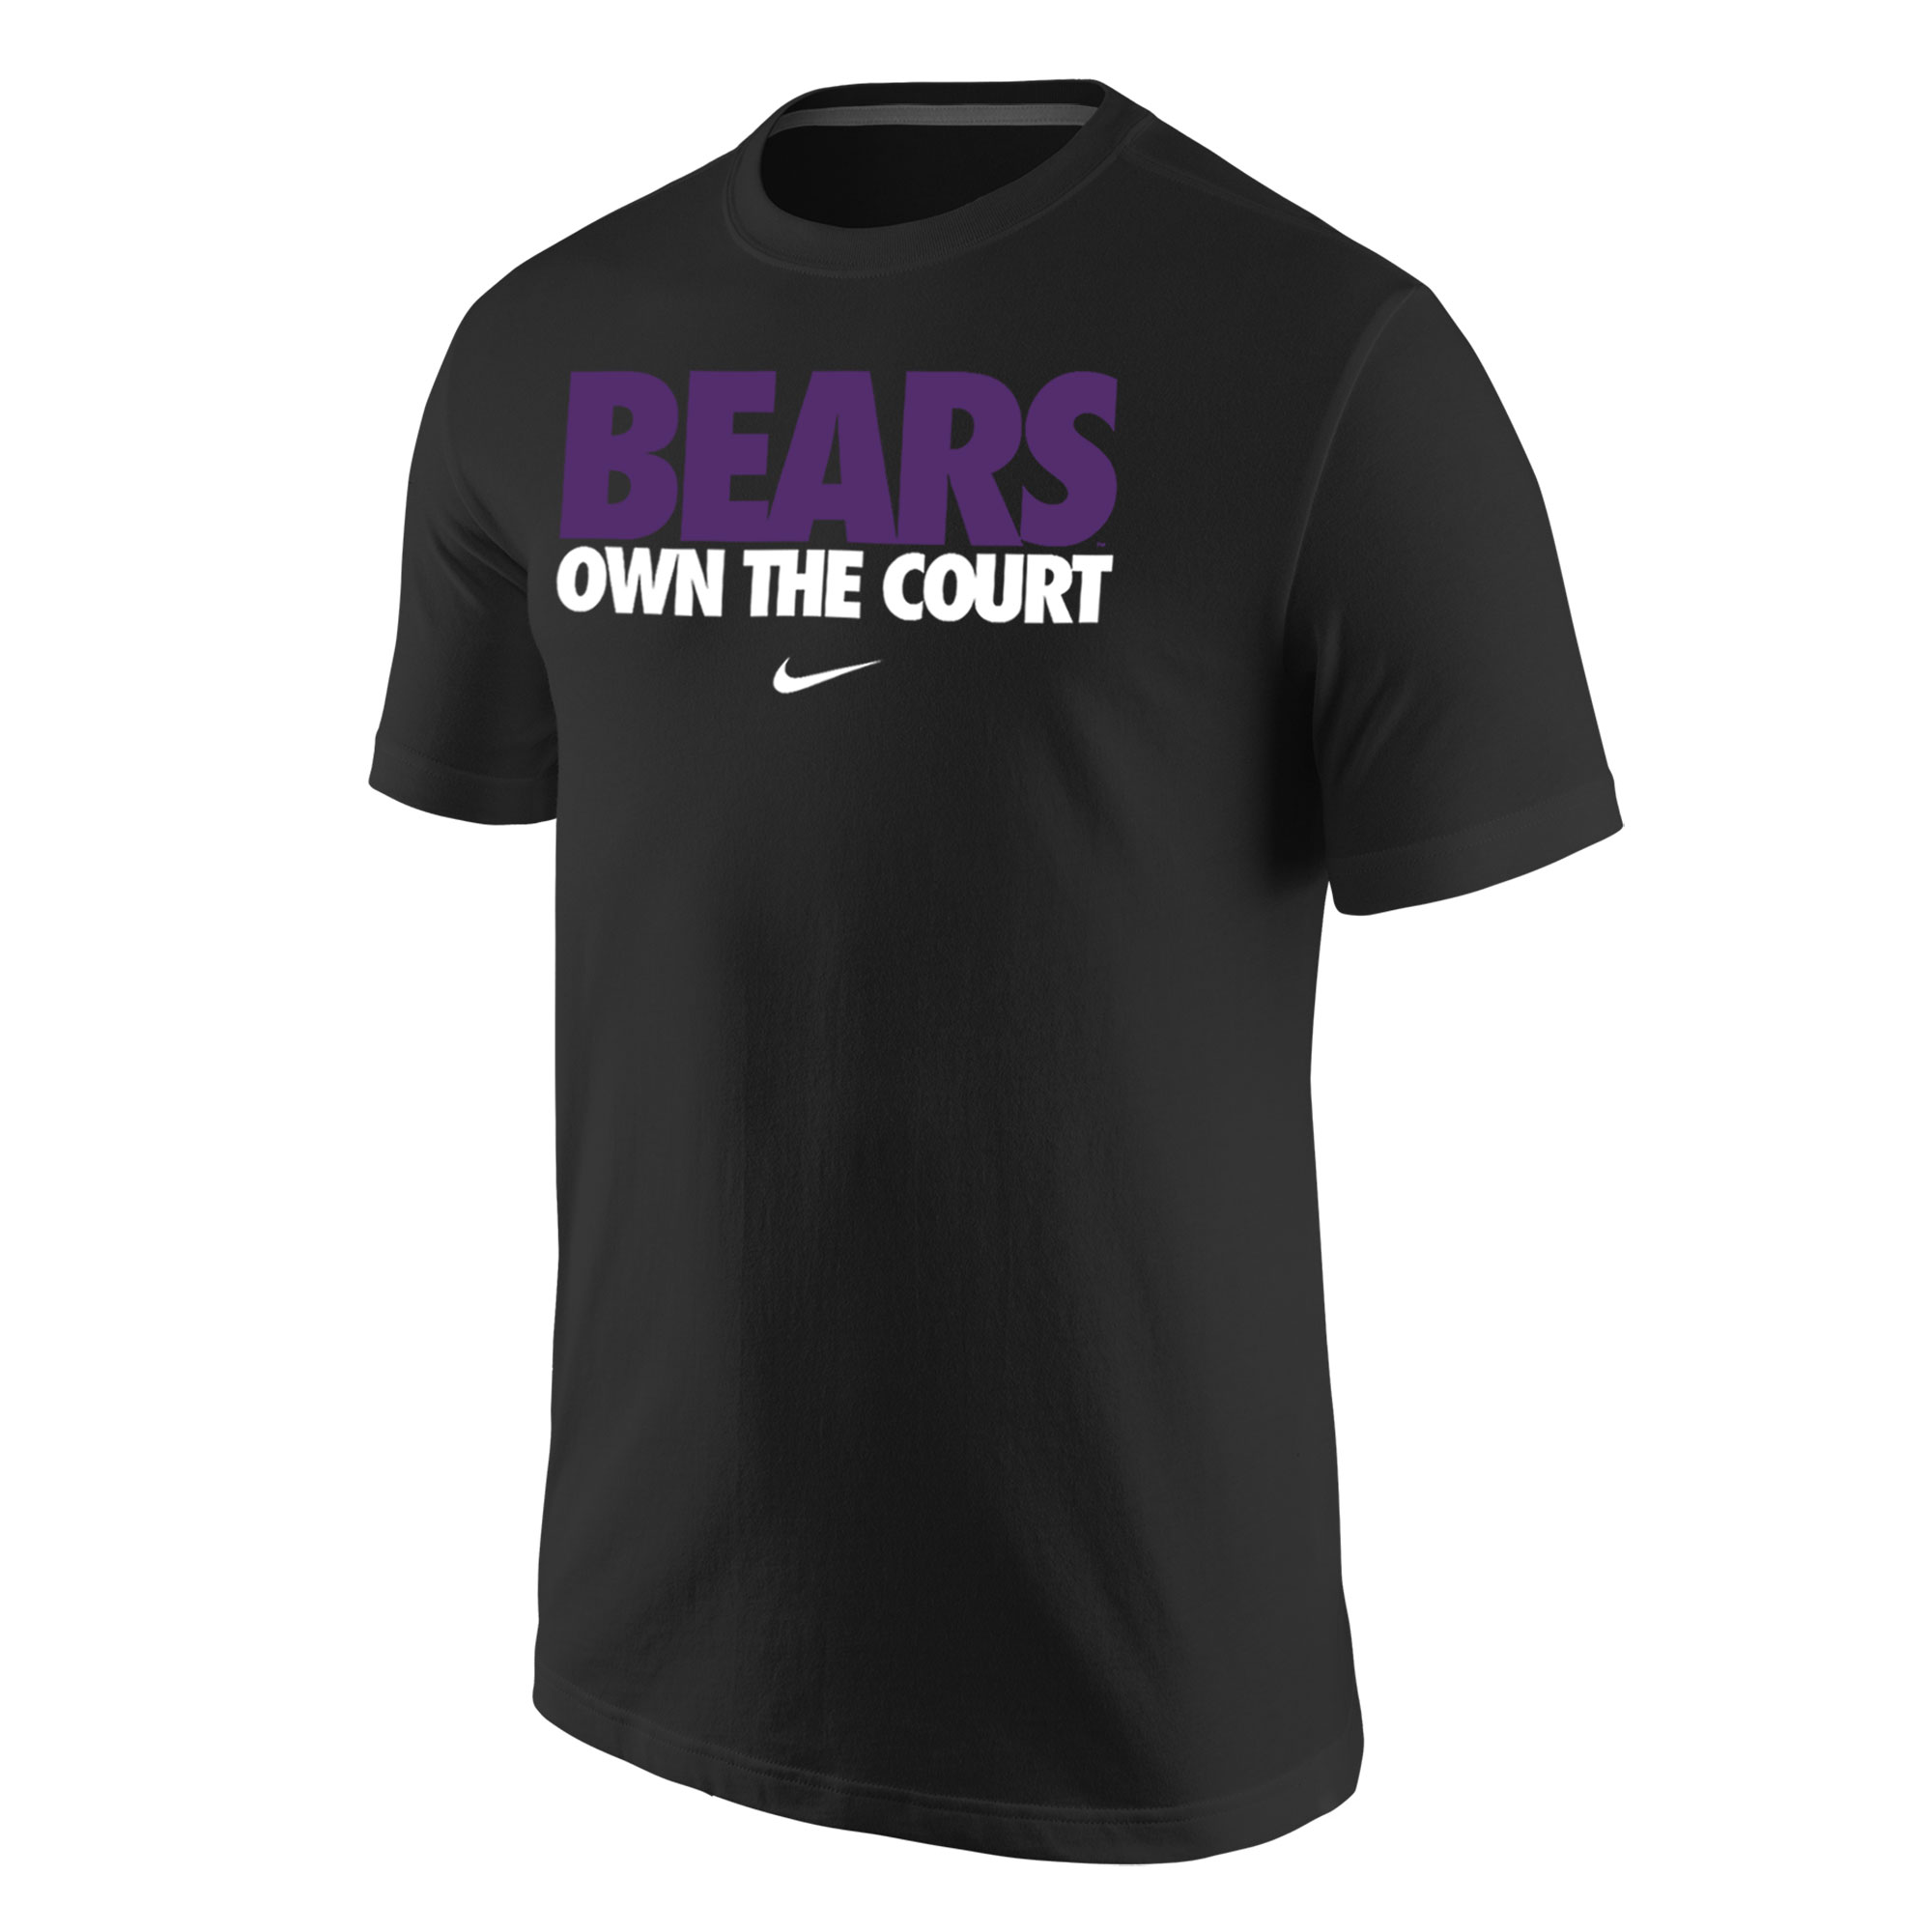 Bears Own The Court Tee